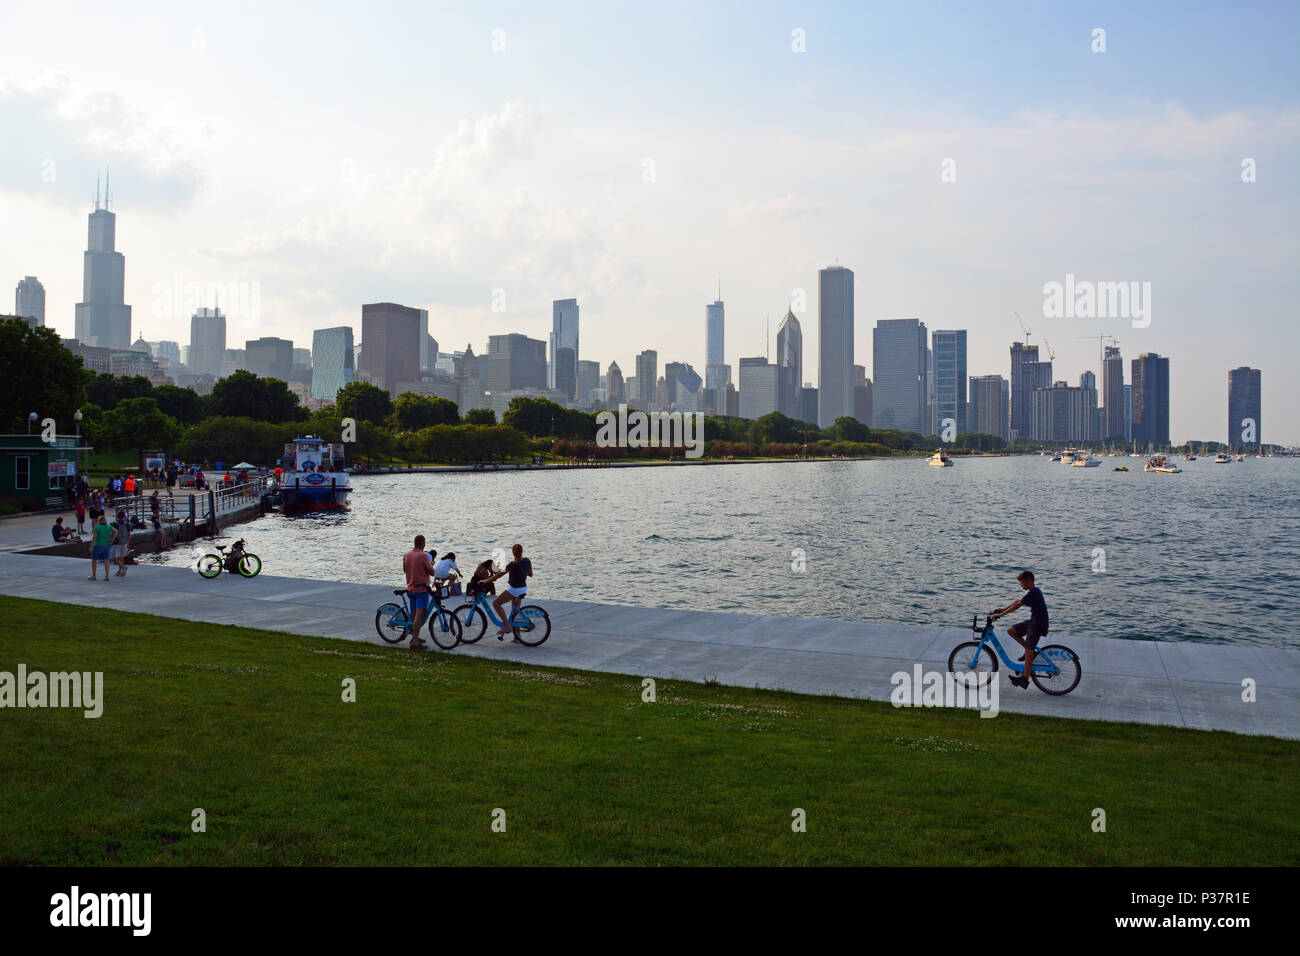 Visitors to Chicago ride Divvy bikes along the lakefront on the Museum Campus with the city skyline in the background. - Stock Image